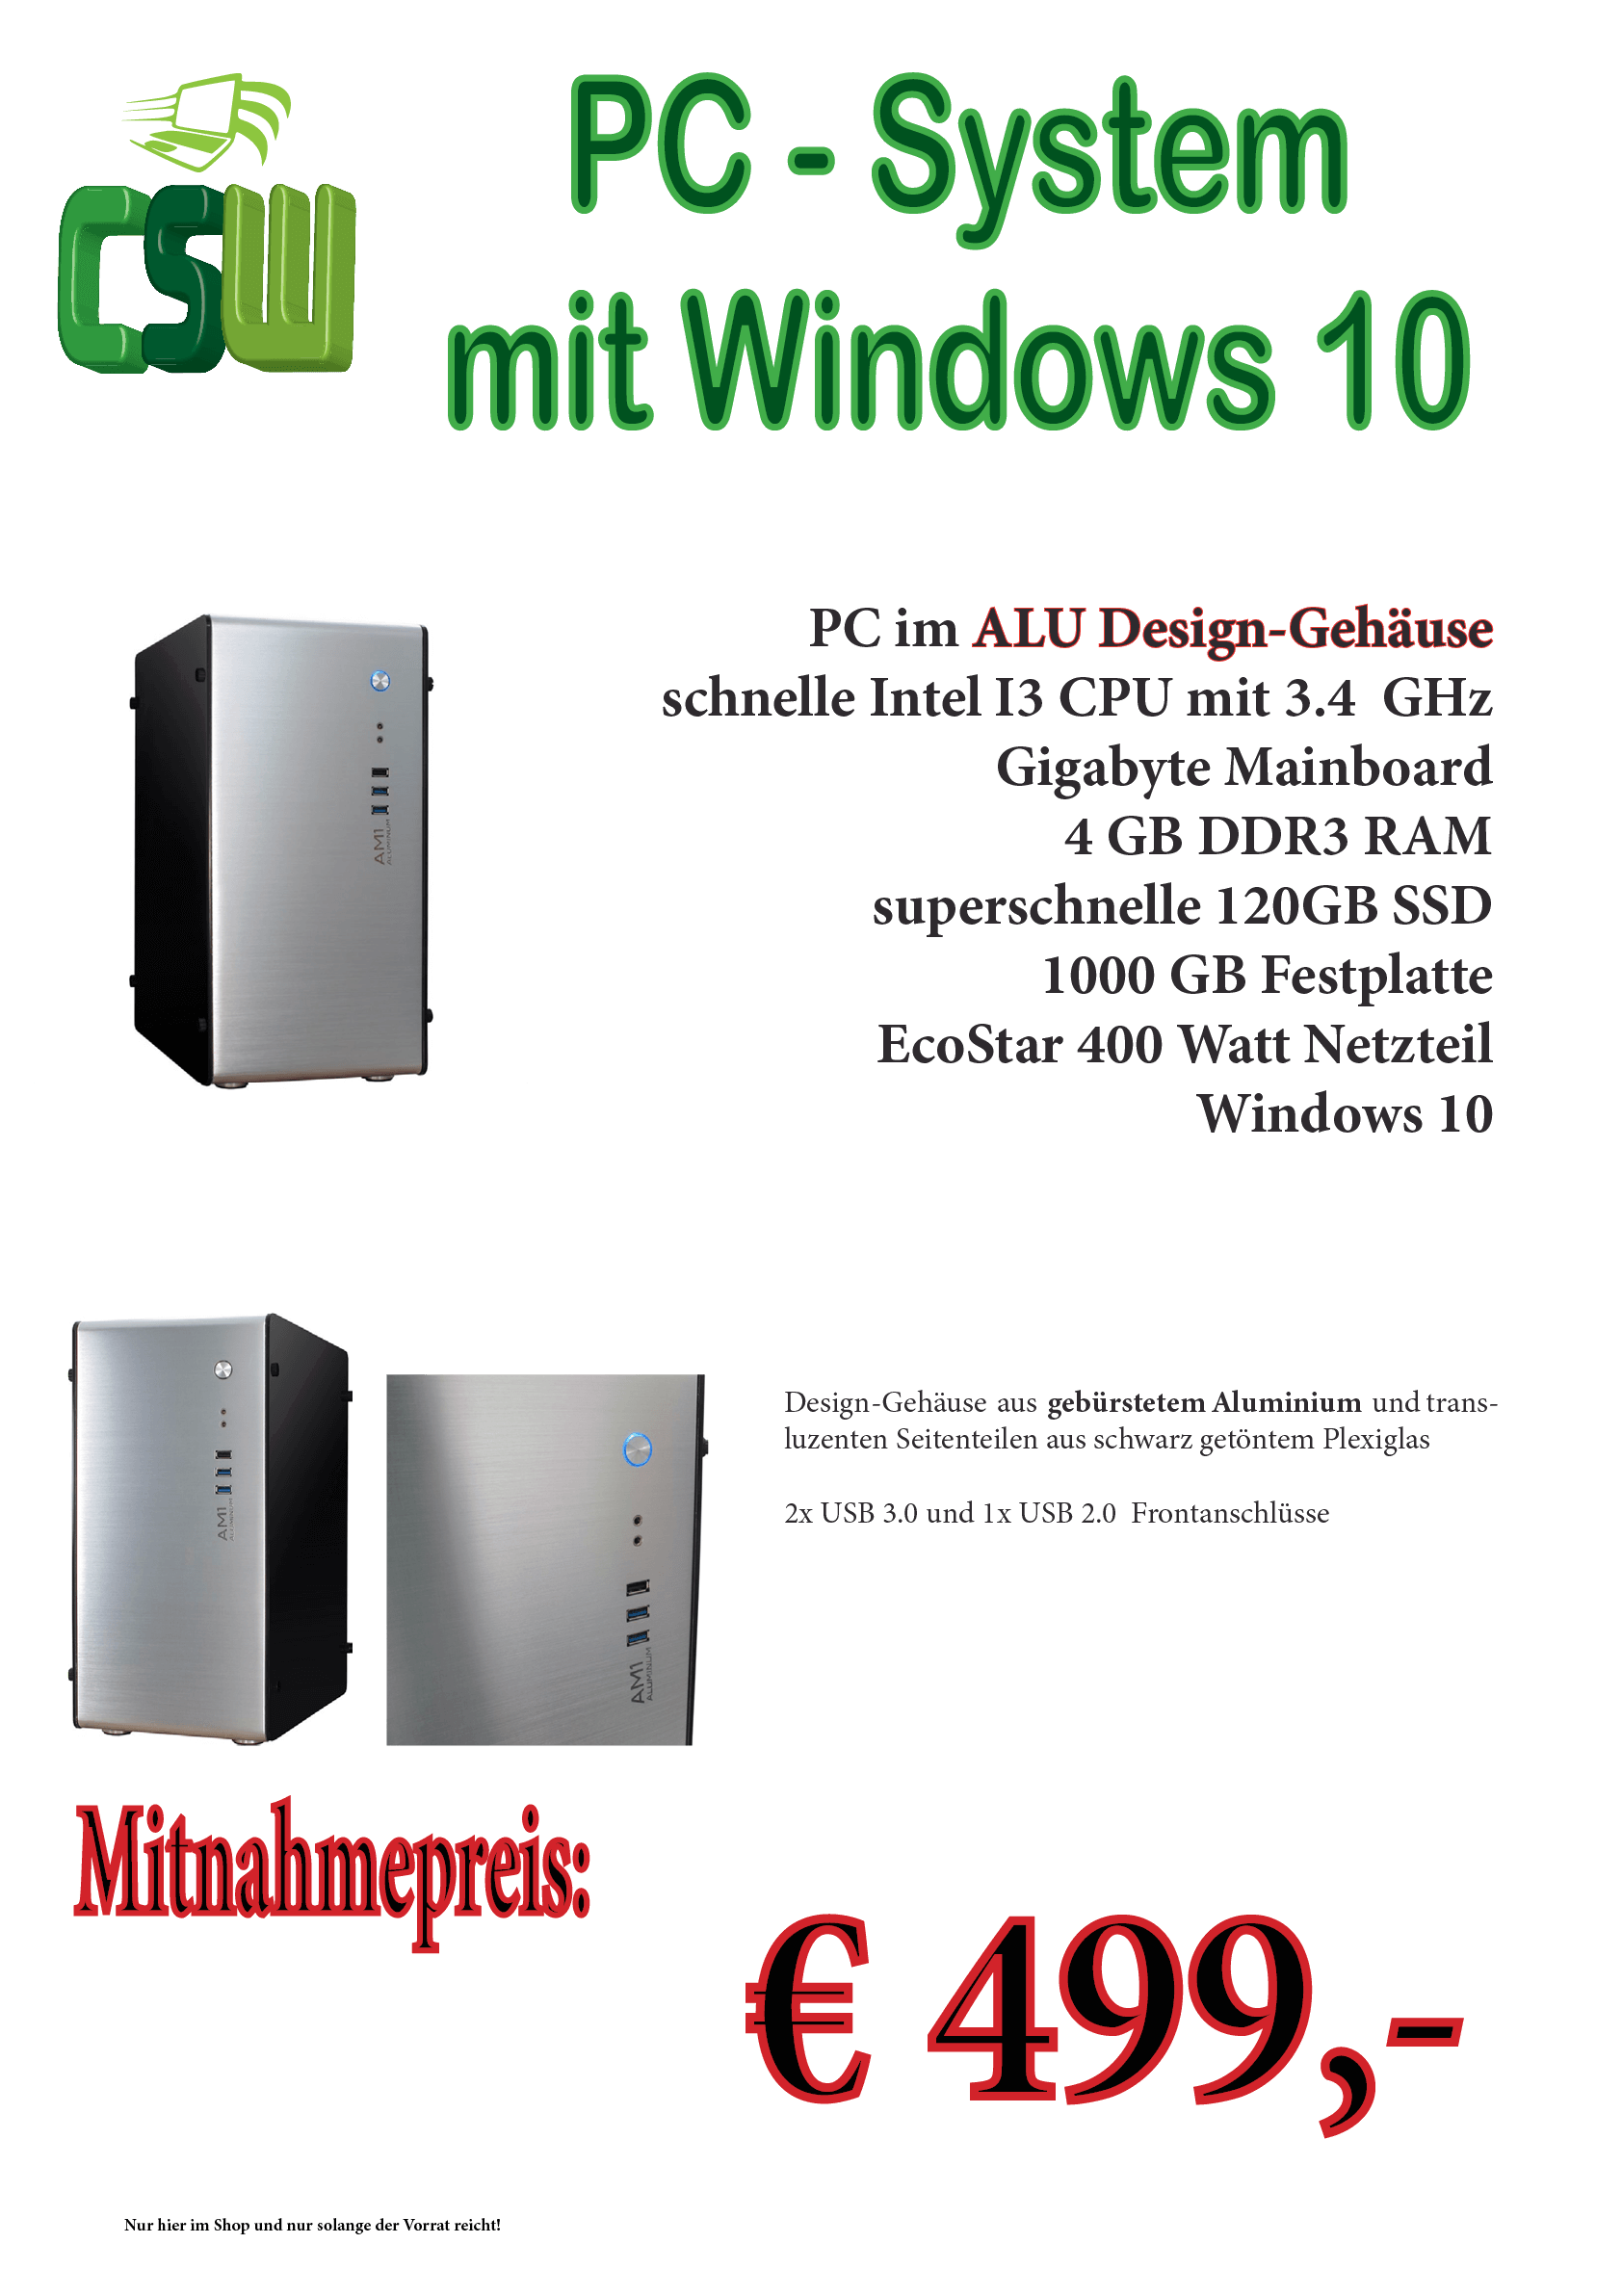 Design PC-System mit Windows 10